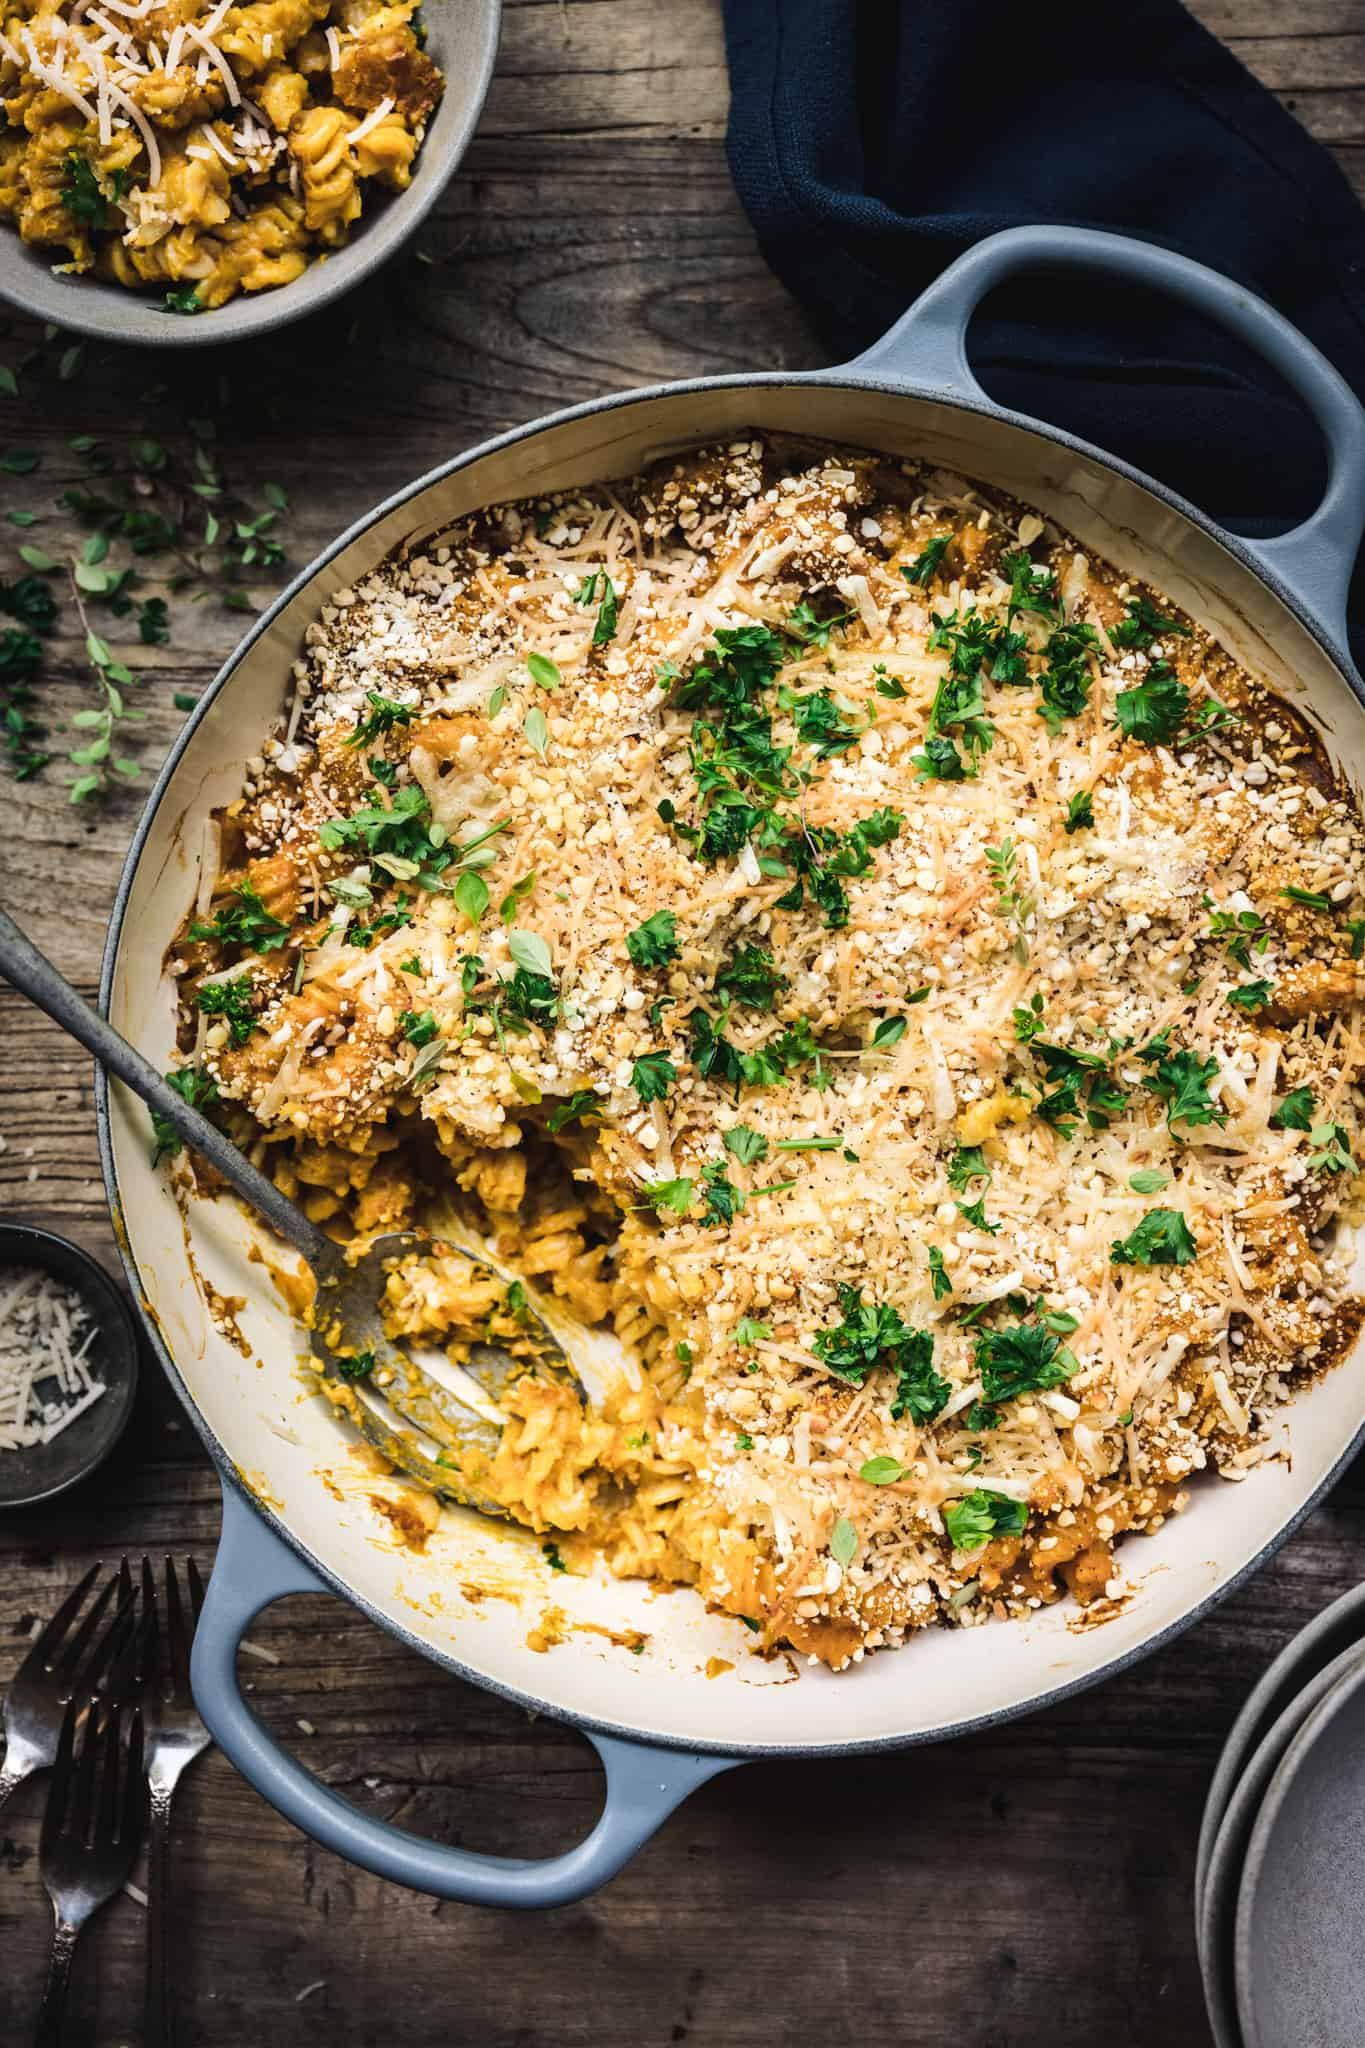 overhead of a baking dish with vegan nut free macaroni and cheese with a spoon